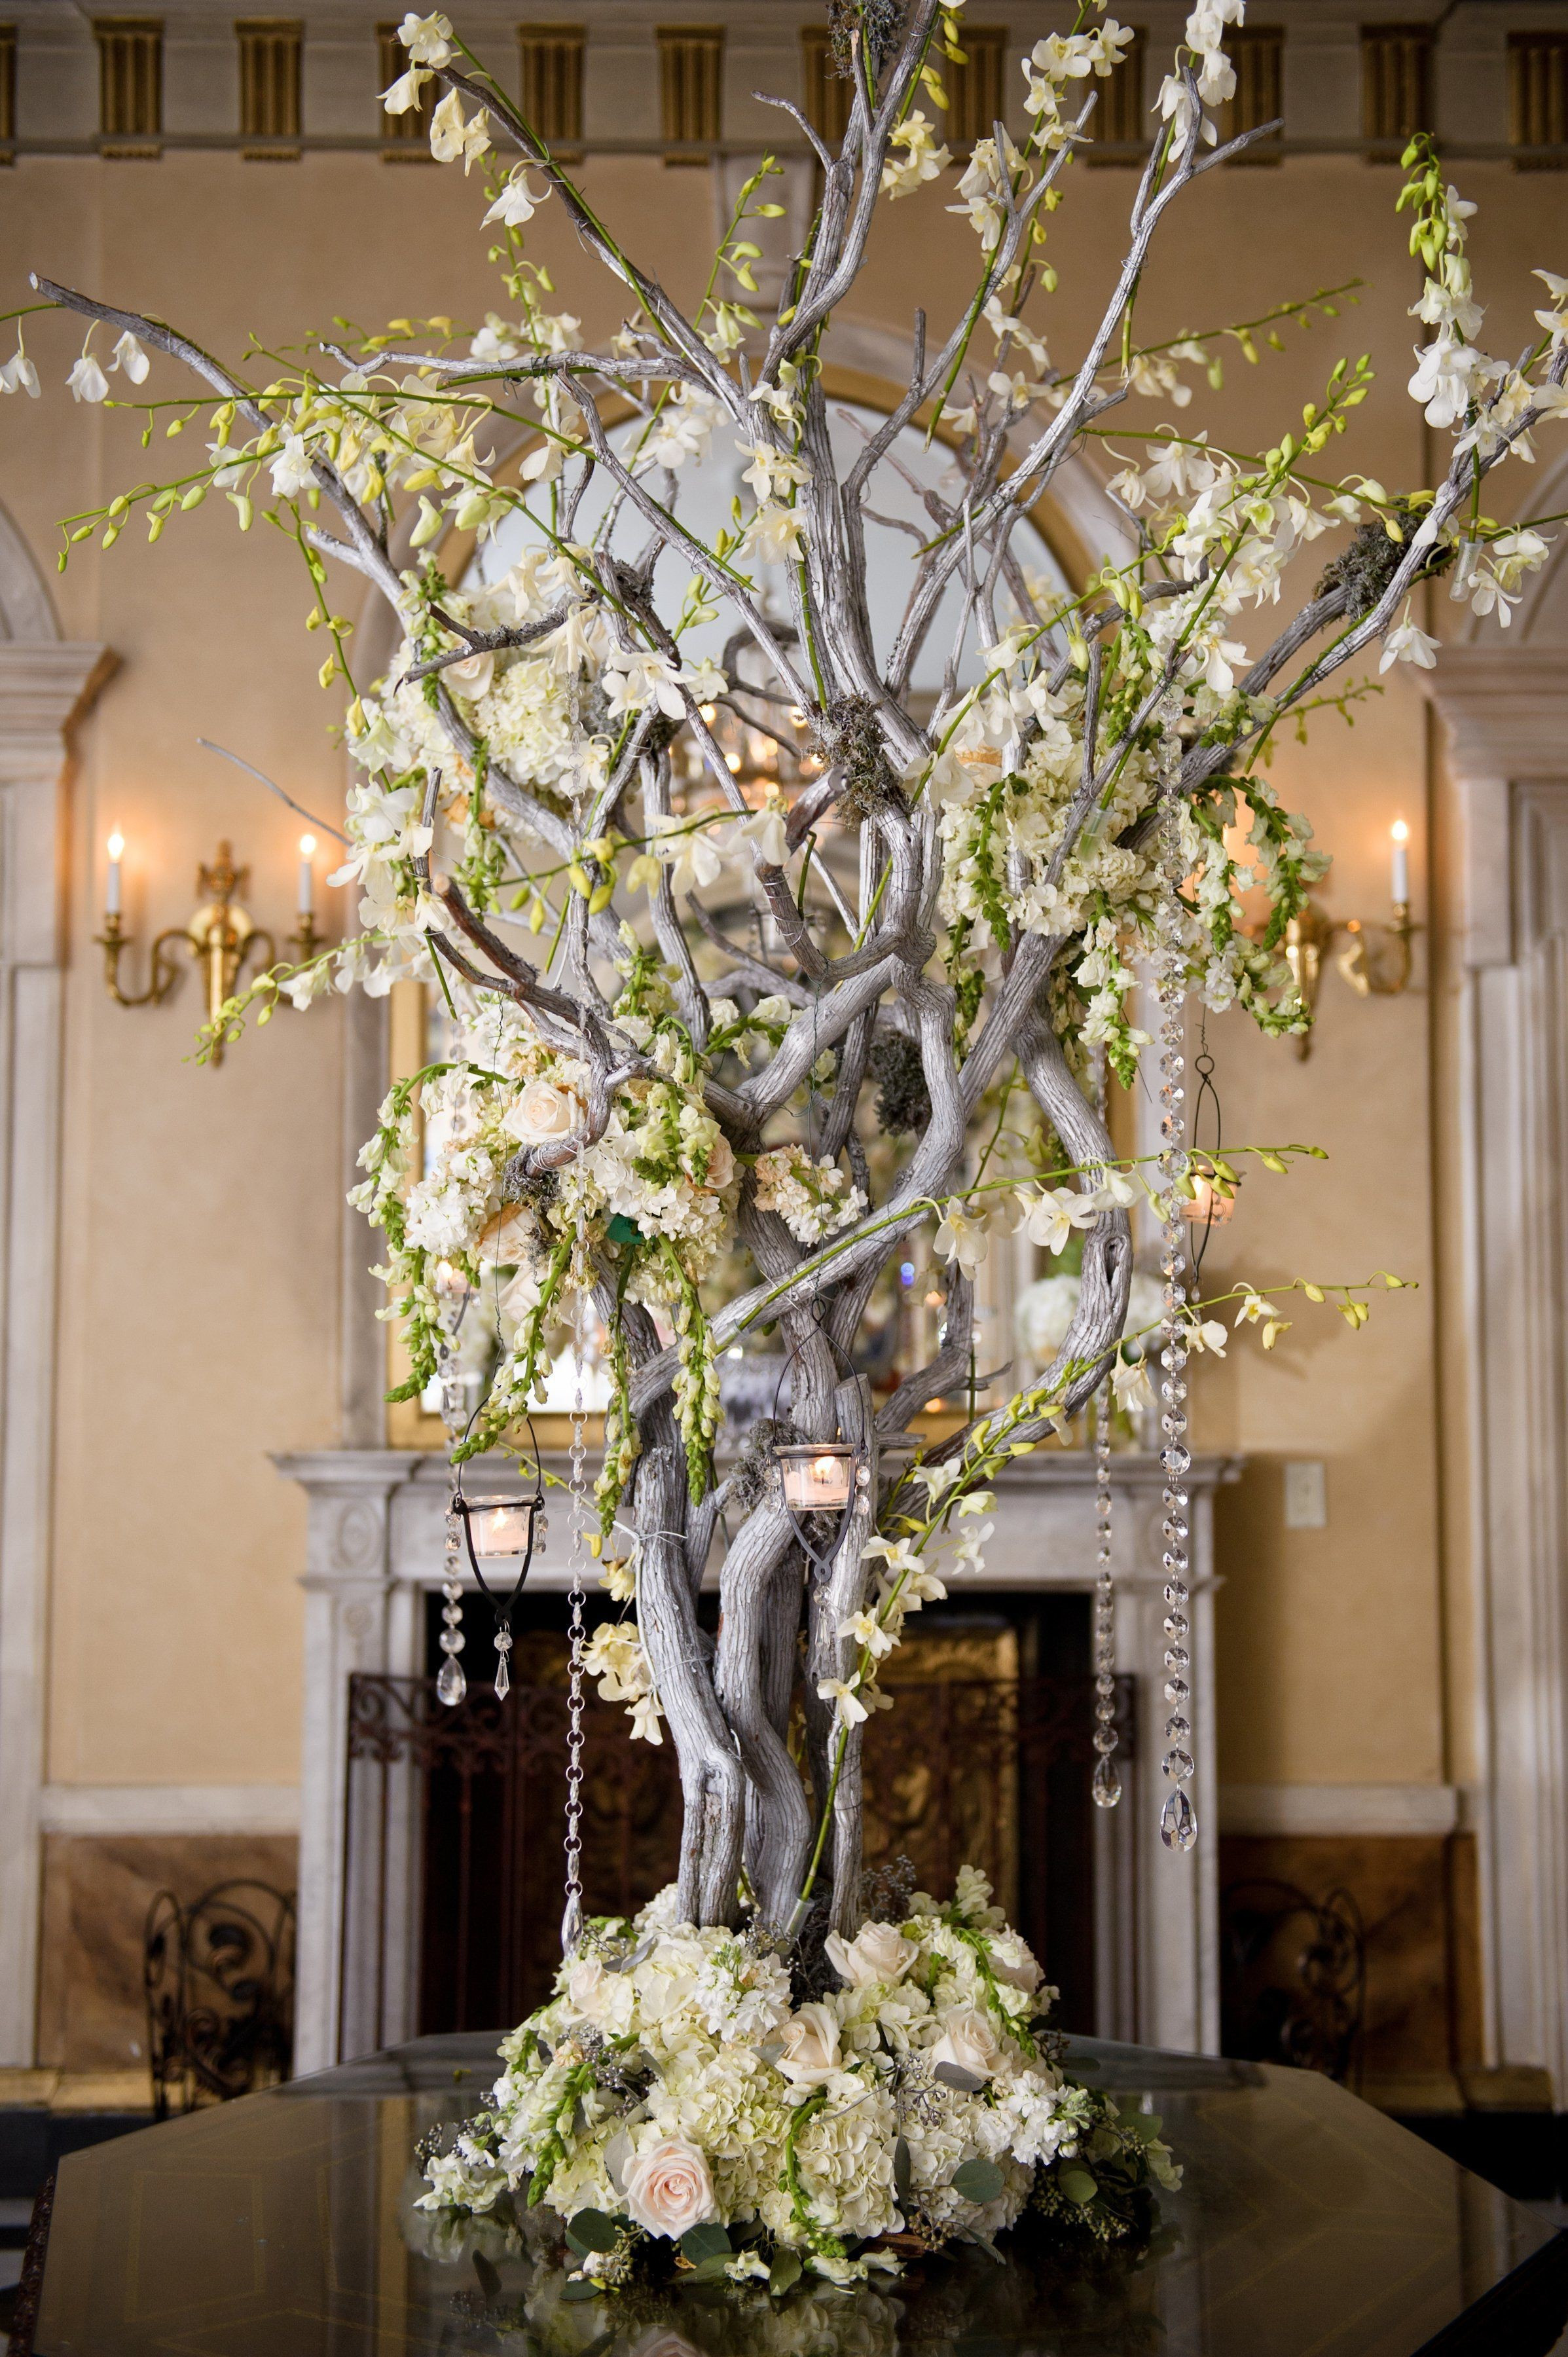 white lily vase of decorative branches for weddings awesome tall vase centerpiece ideas for decorative branches for weddings best of a tall arrangement of manzanita branches dripping with white blooms